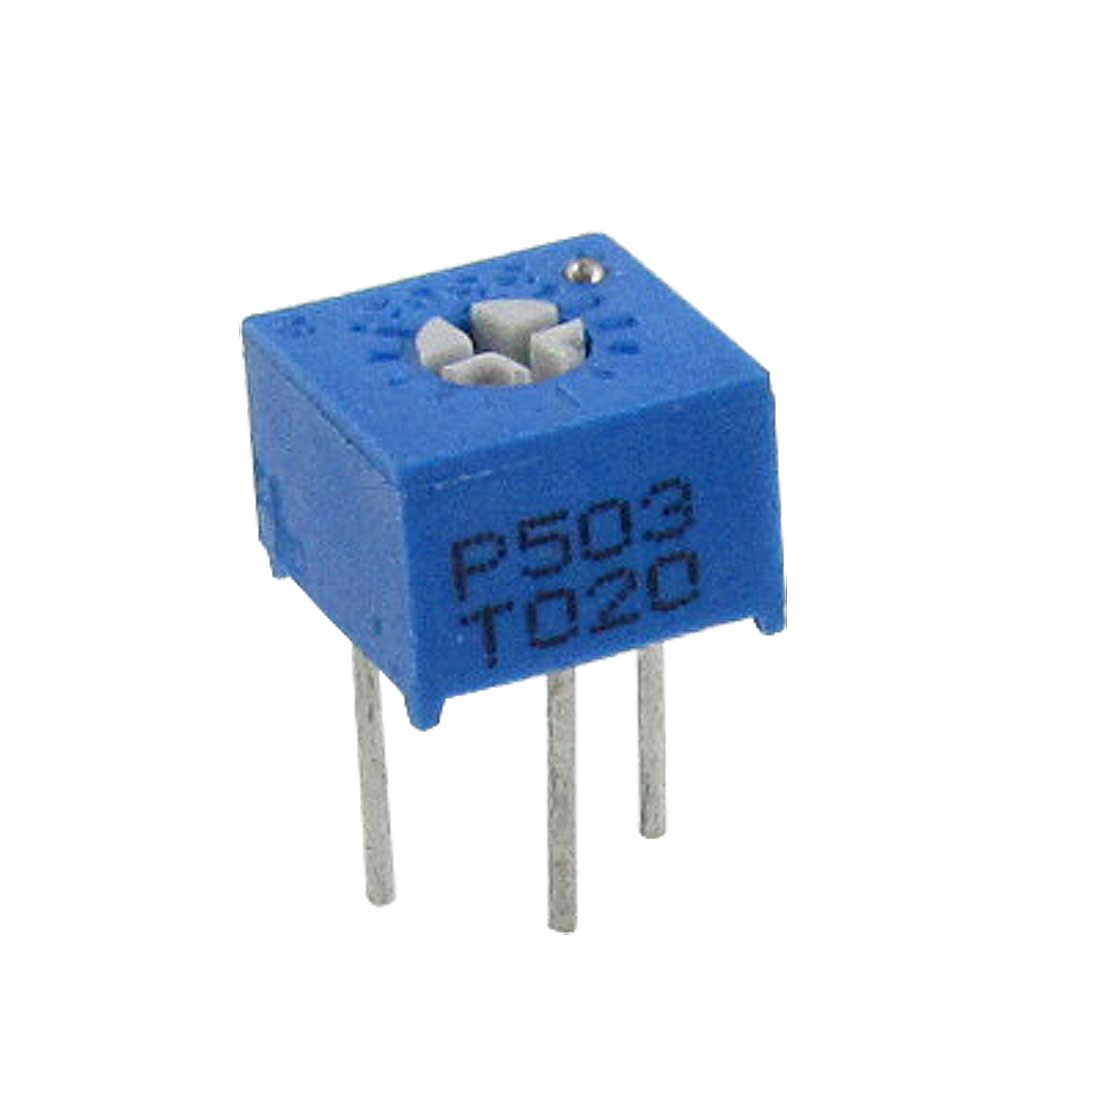 "50x 3362P 503 50K Ohm 1/4"" Square Cermet Potentiometer Trimmer Pot"